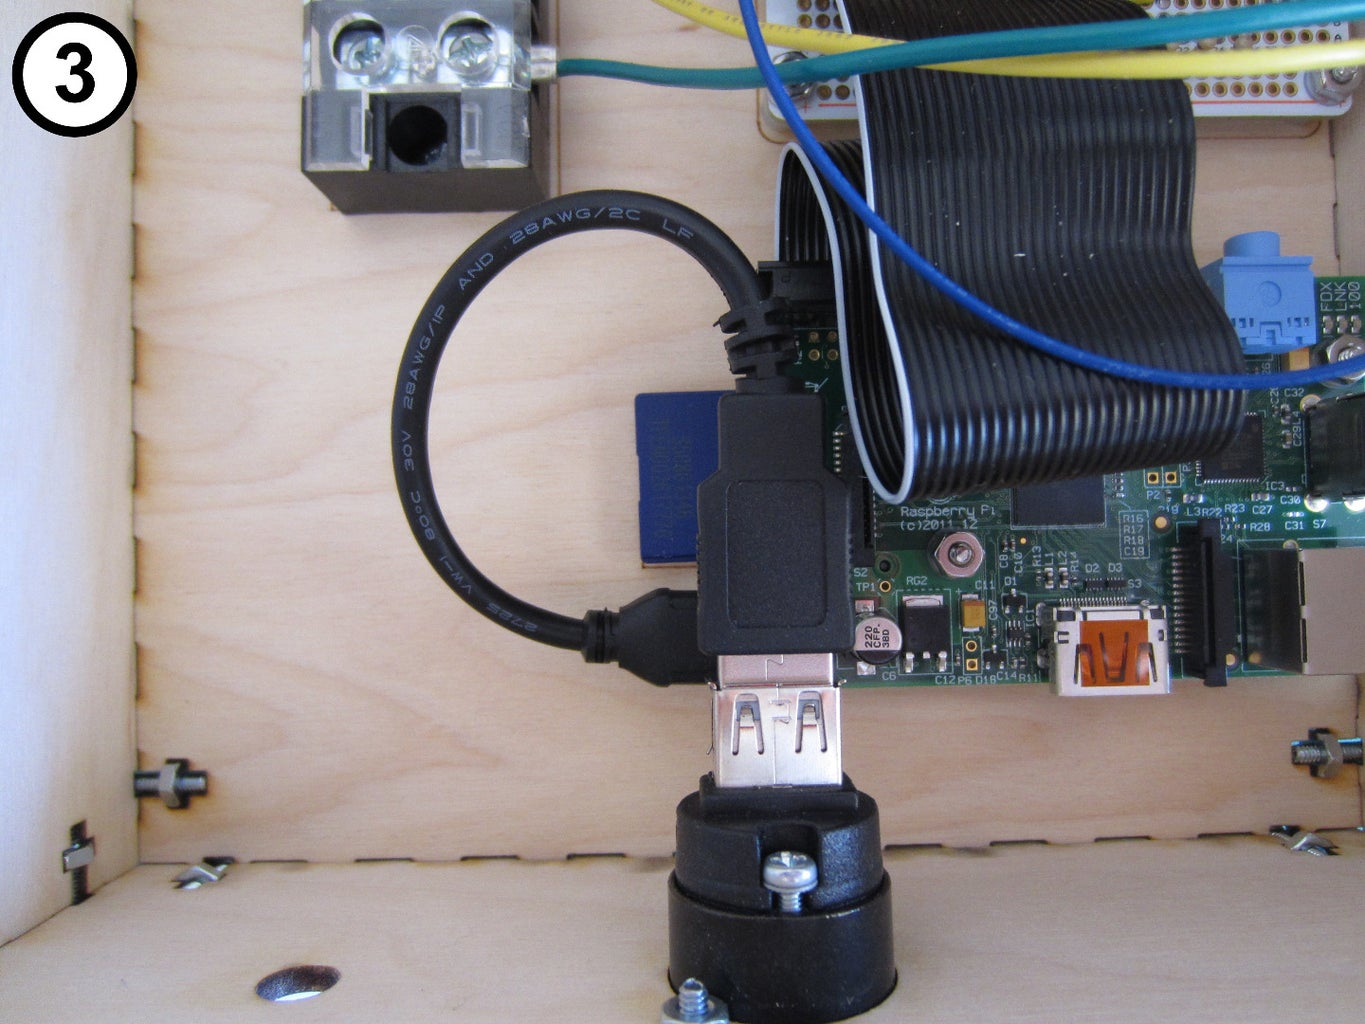 Connect the Raspberry Pi to the USB Power Port